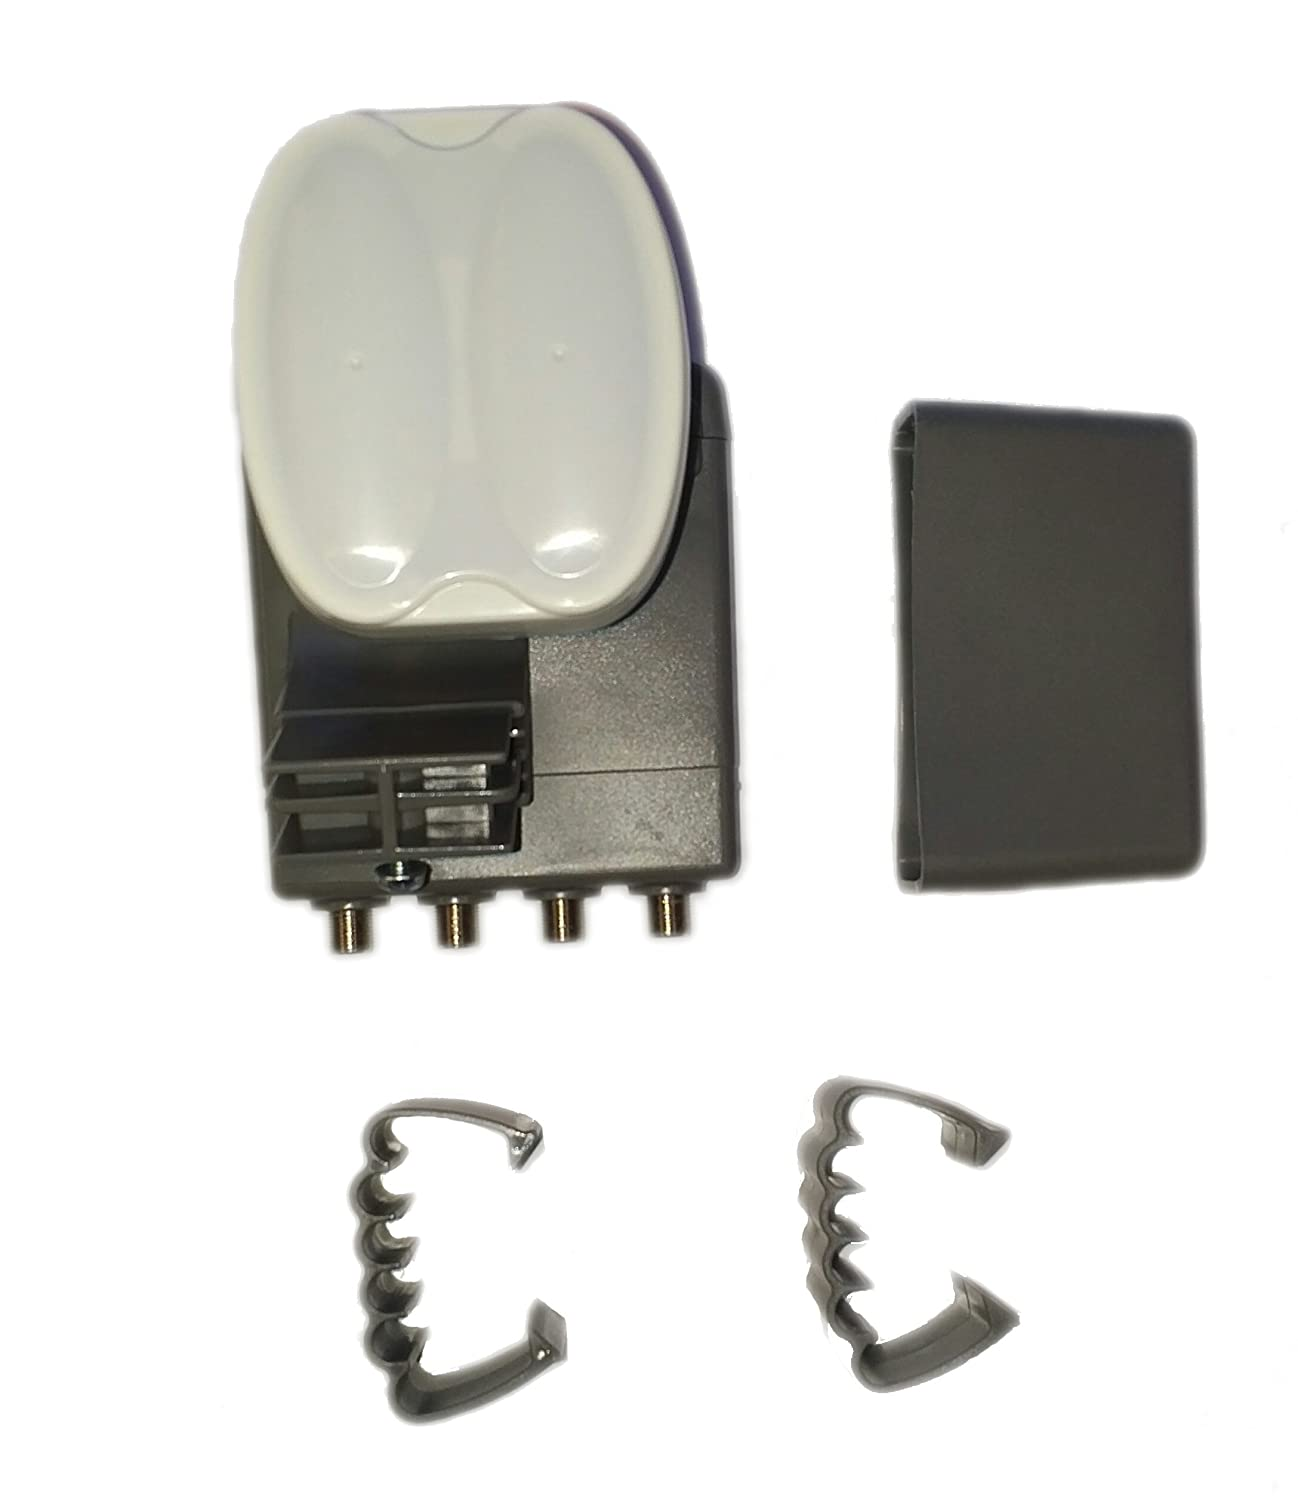 SHAW DIRECT SHAW60-GI XKU TRIPLE SATELLITE QUAD OUTPUT SWITCHABLE LNBF WITH BOOT AND WIRE CLIP SHAW60E-GI